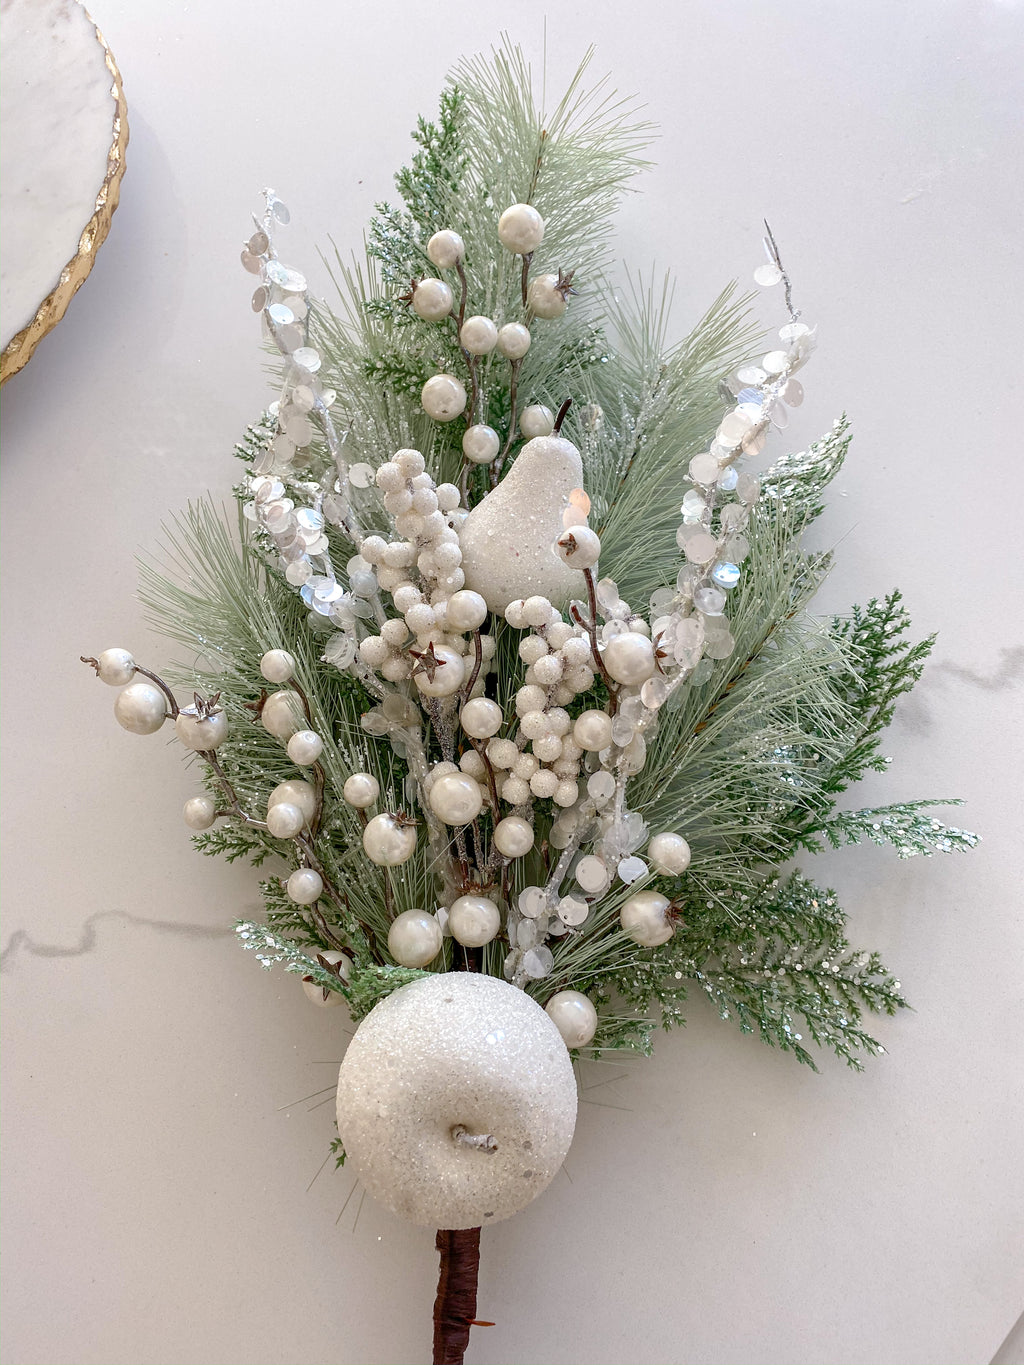 White Pine Spray with Apples & Berries-Inspire Me! Home Decor